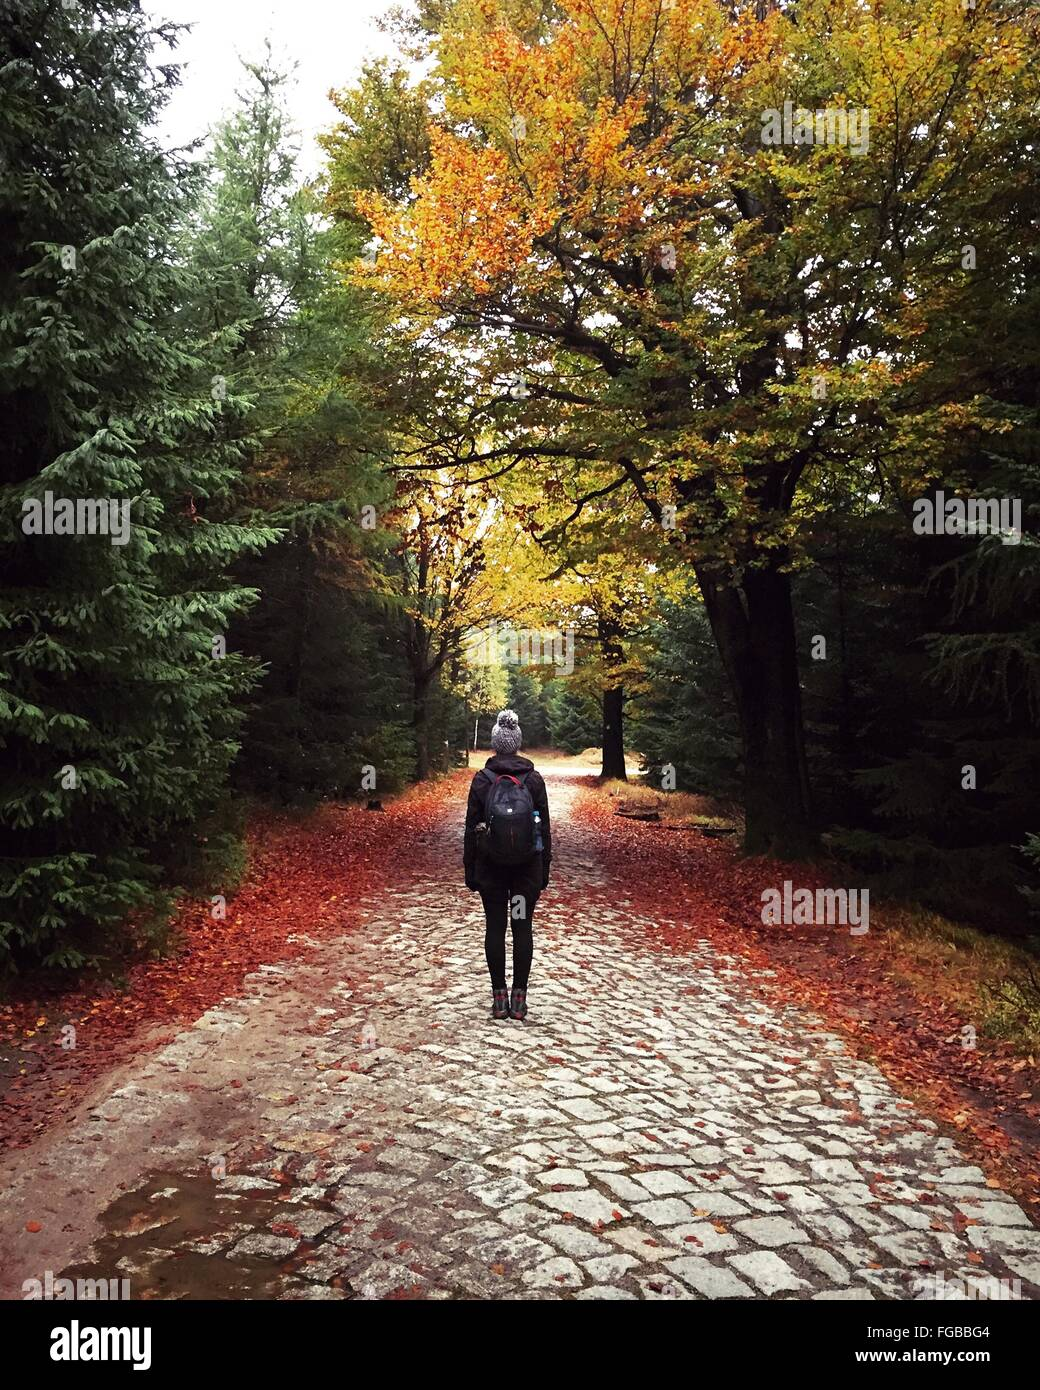 Rear View Of Woman With Backpack Standing On Street Amidst Trees In Forest During Autumn - Stock Image